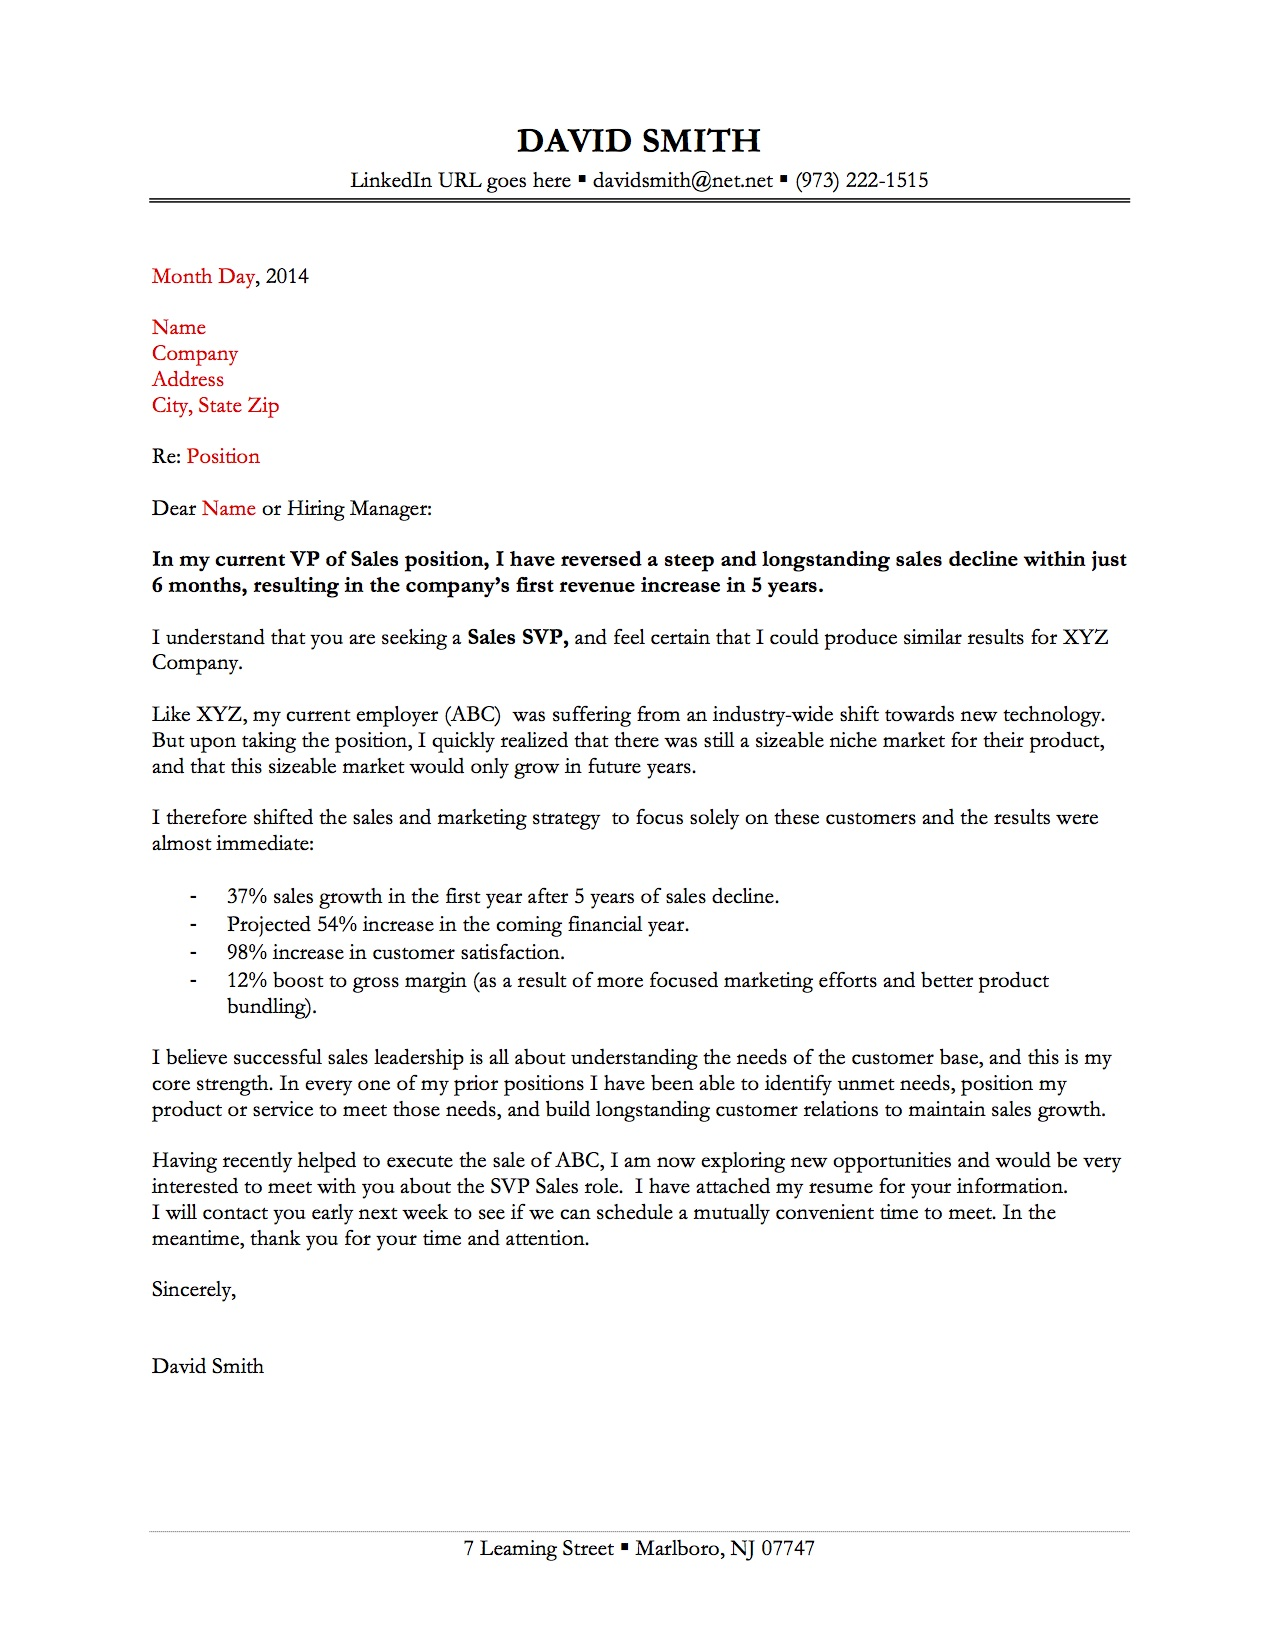 sample cover letter 2 - Resume Cover Letter Ideas 2